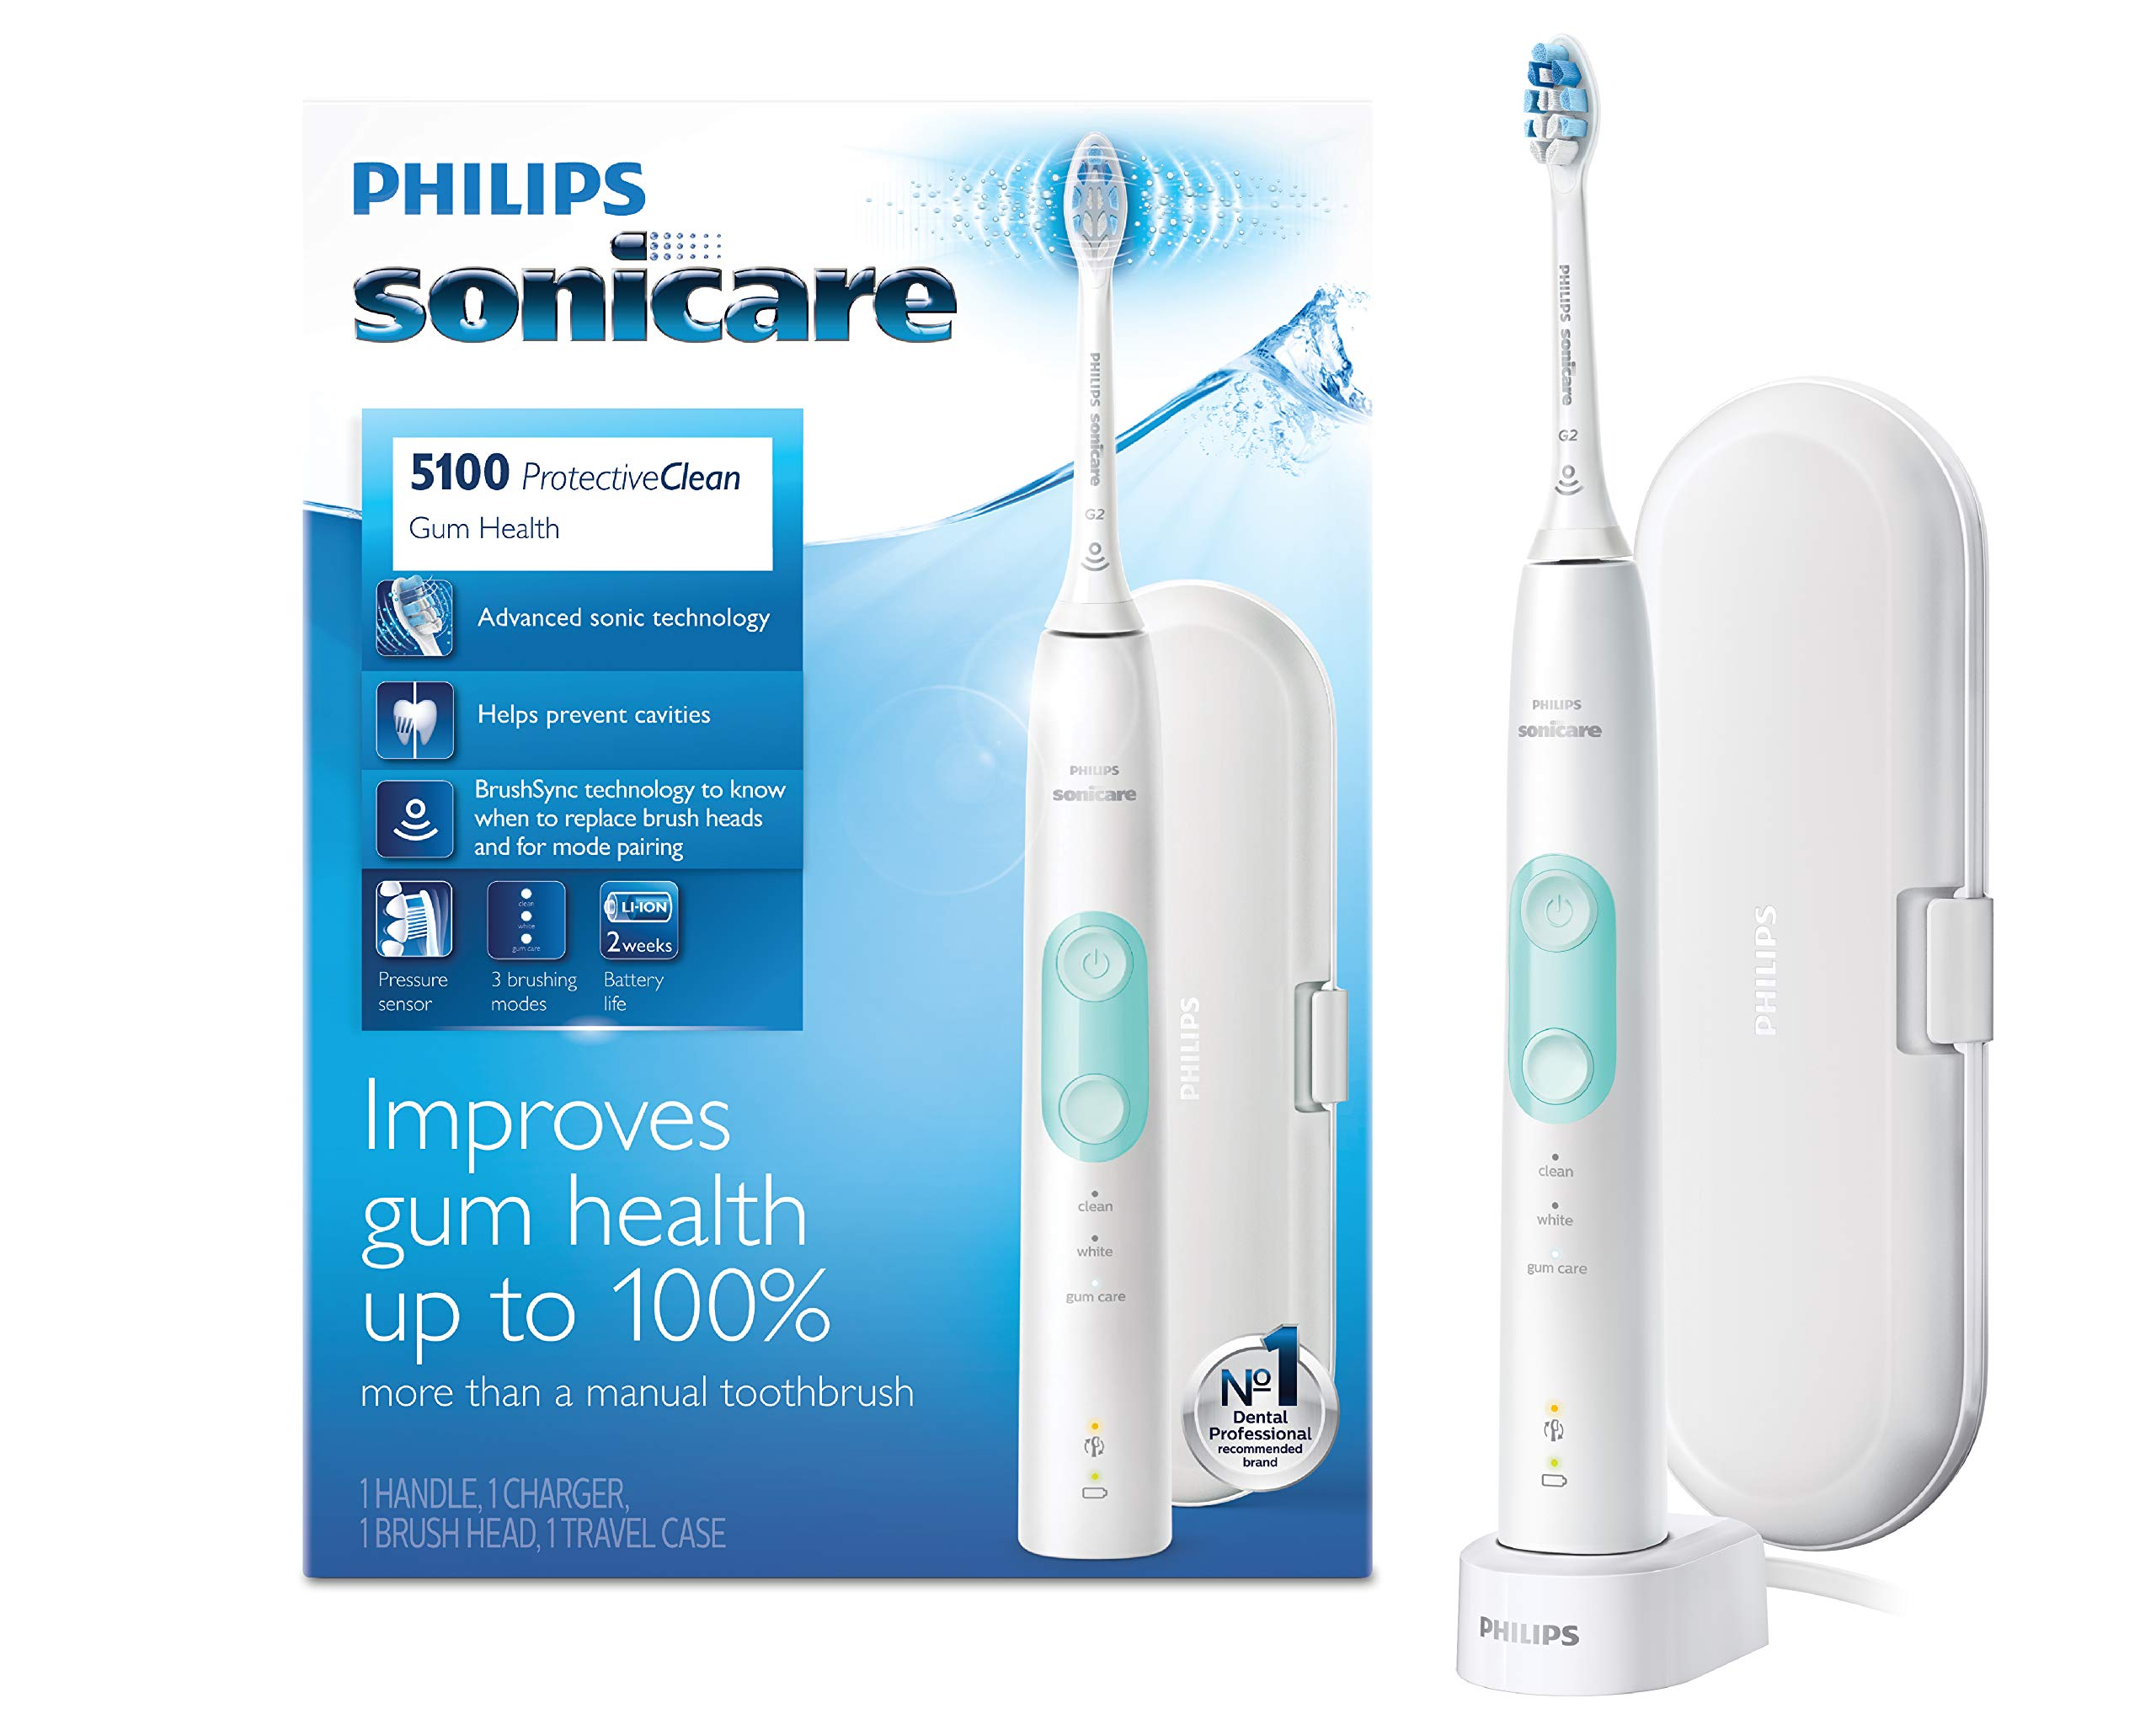 Philips Sonicare ProtectiveClean 5100 Gum Health, Rechargeable electric toothbrush with pressure sensor, White Mint ,HX6857/11